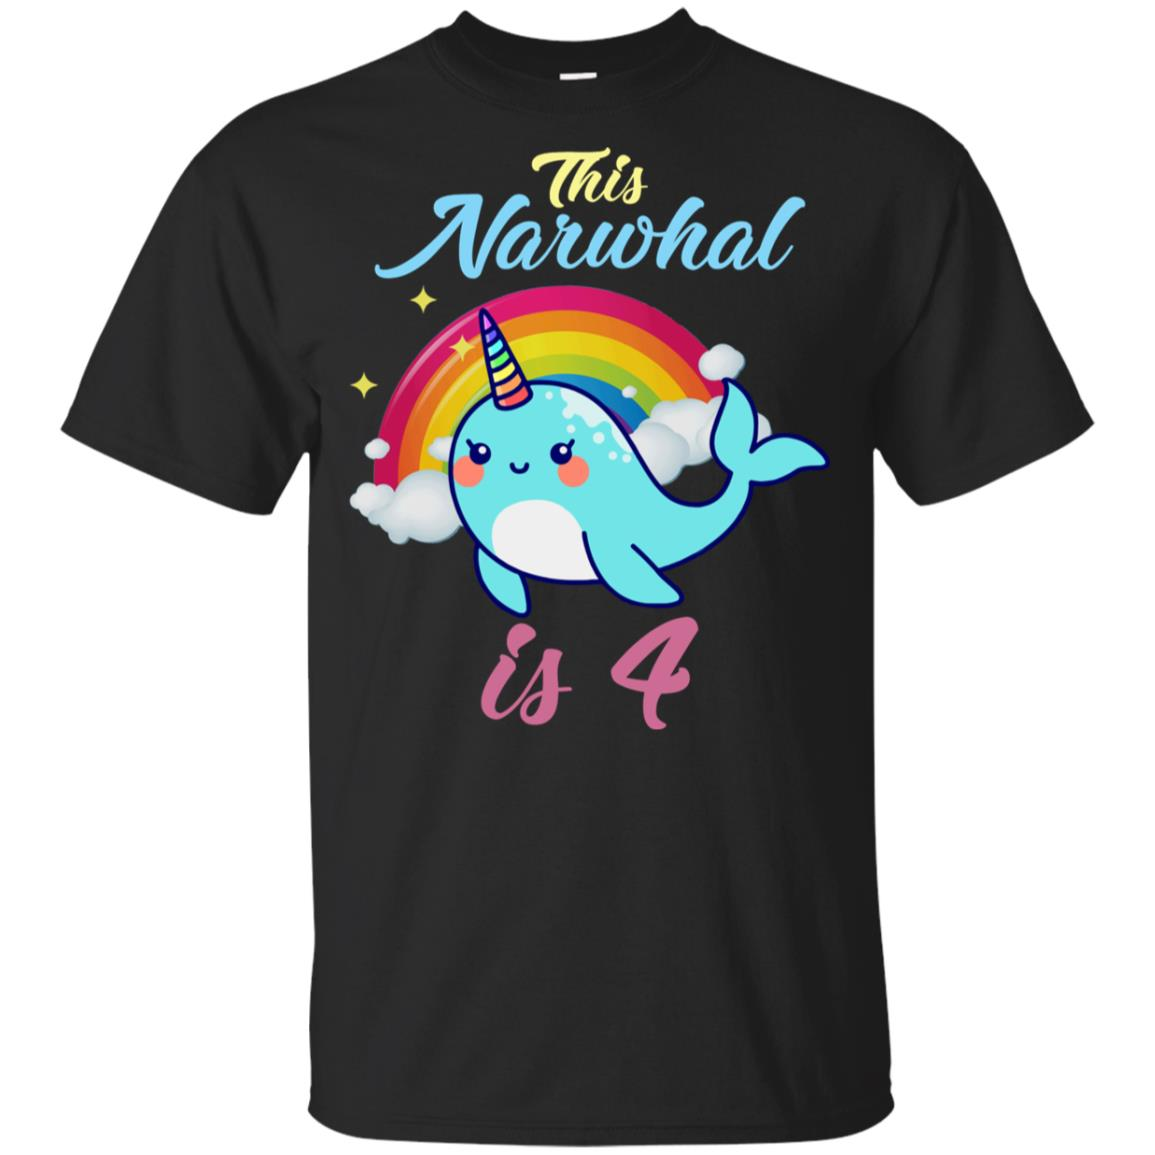 This Narwhal Is 4 Year Old 4th Birthday Youth Short Sleeve